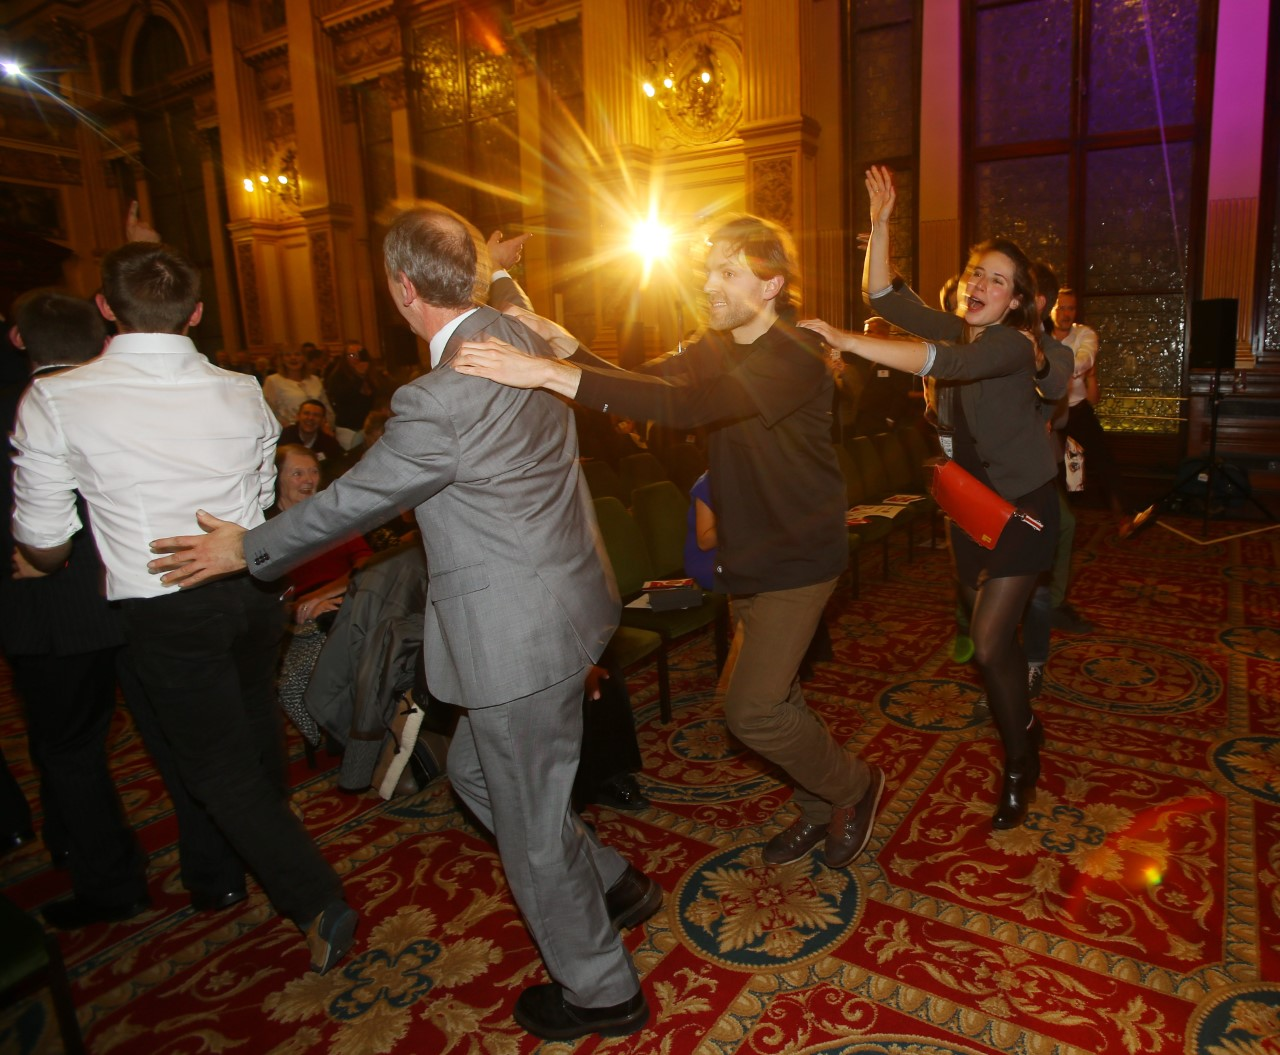 Community Champion Awards celebrate winners' success with conga in the City Chambers